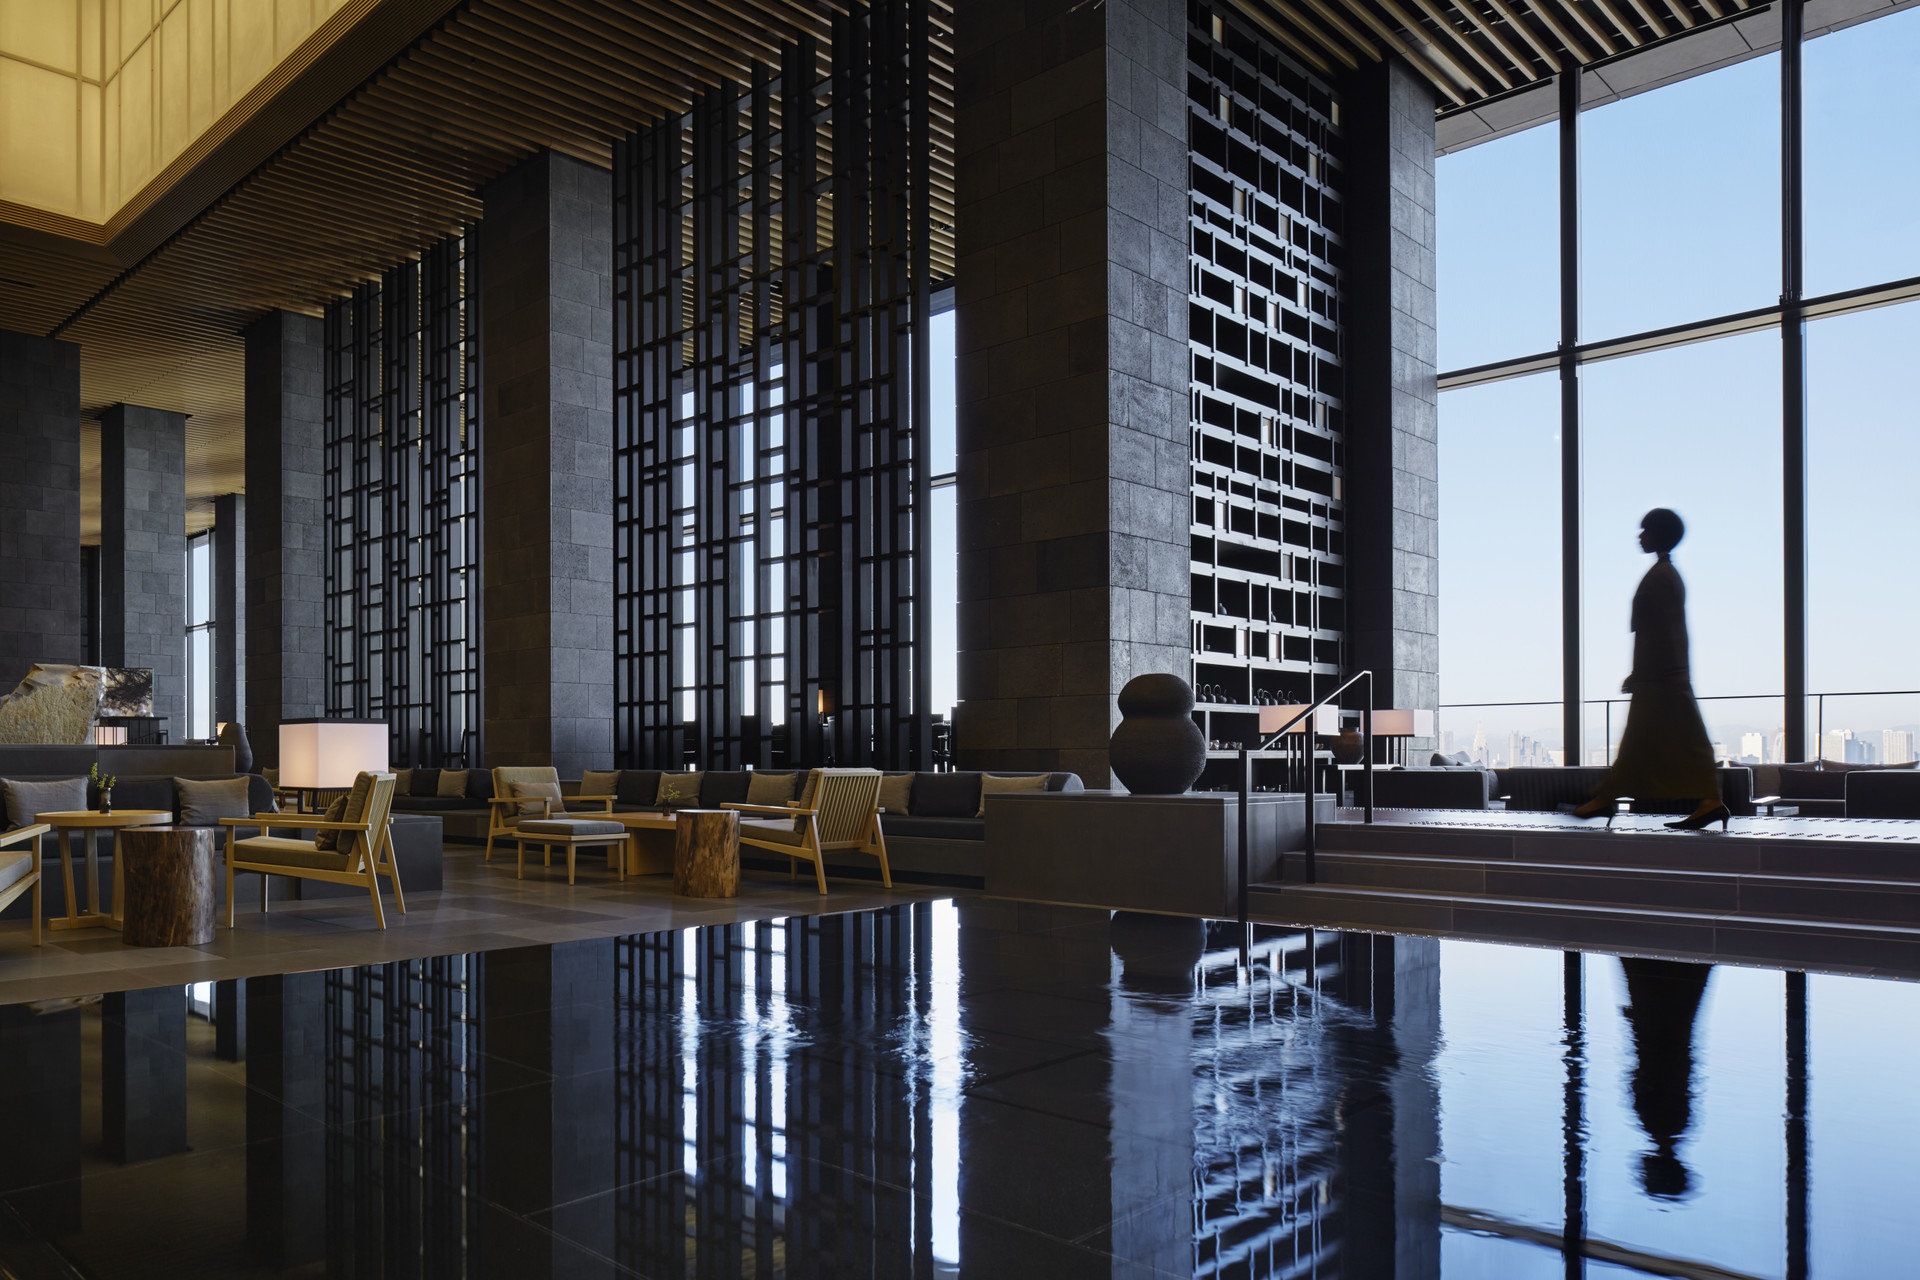 Hotels An Tokyo Indoor Architecture Reflection Interior Design Lighting Wood Facade Tourist Attraction Symmetry Professional